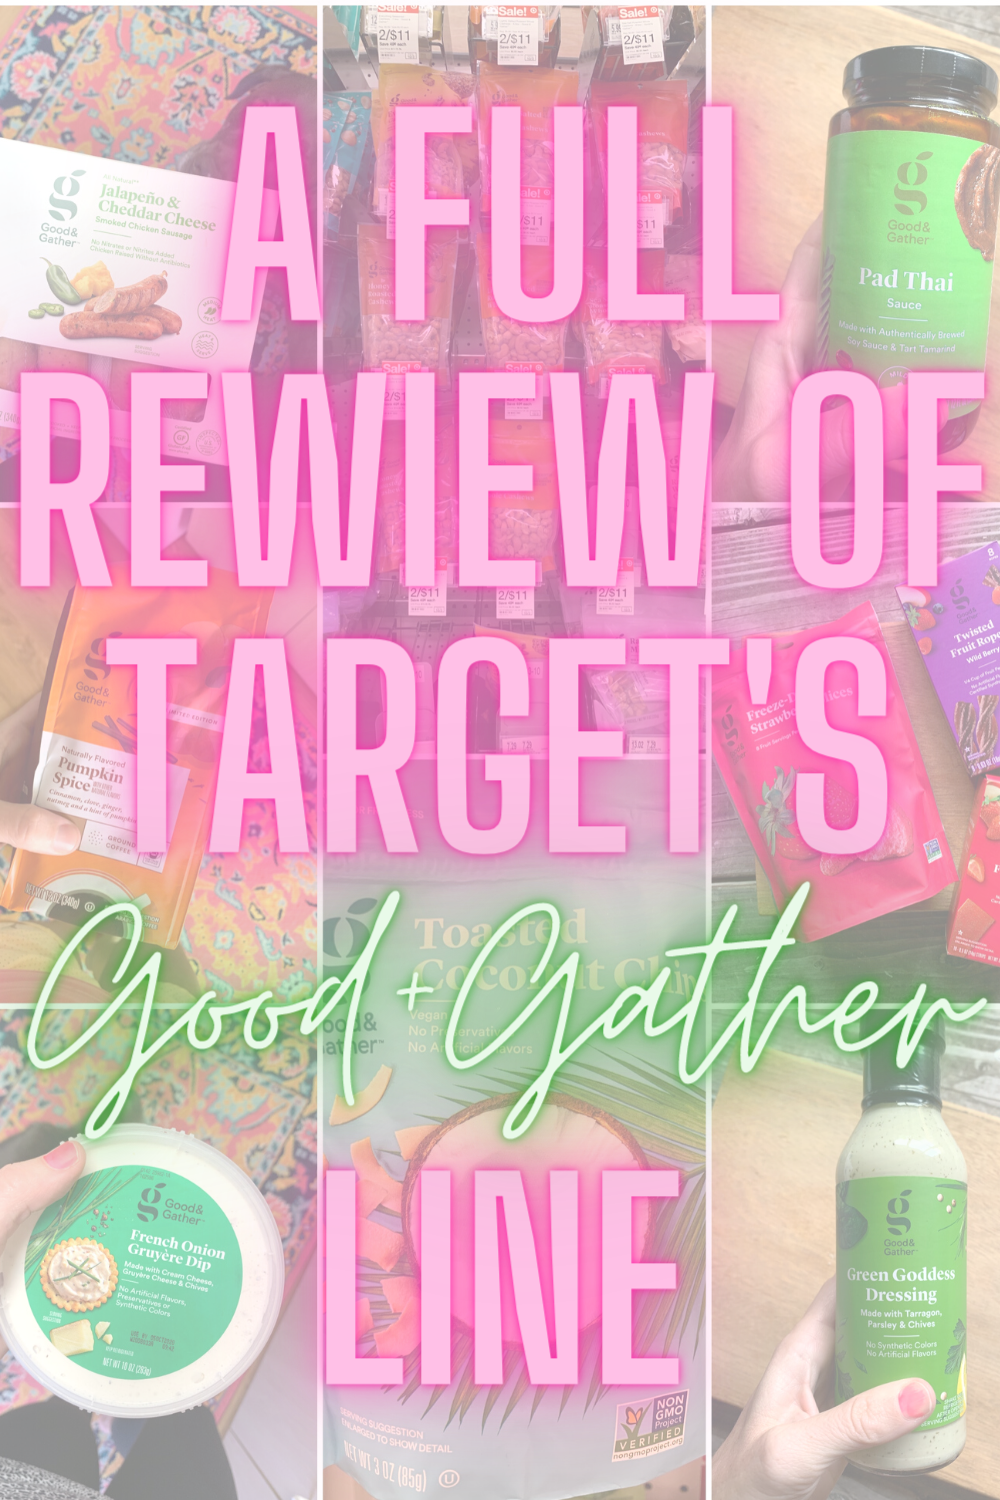 Target's Good And Gather Brand: A Full Review - Curious about Good & Gather from Target? Today I'm sharing a full review of products! | good & gather target - target good and gather - good & gather